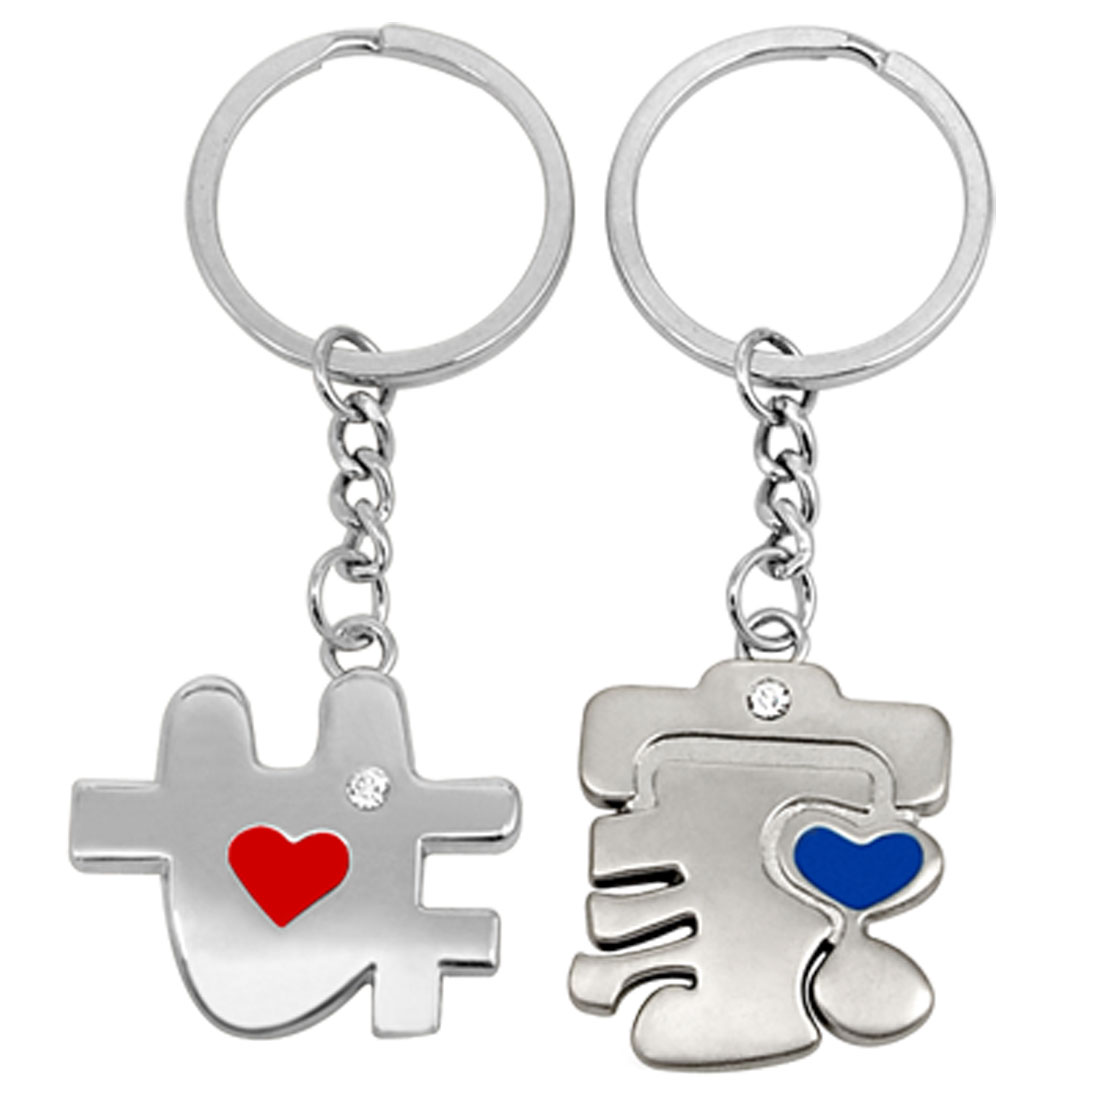 Chinese Characters Keychain Couple Key Ring Chain Set